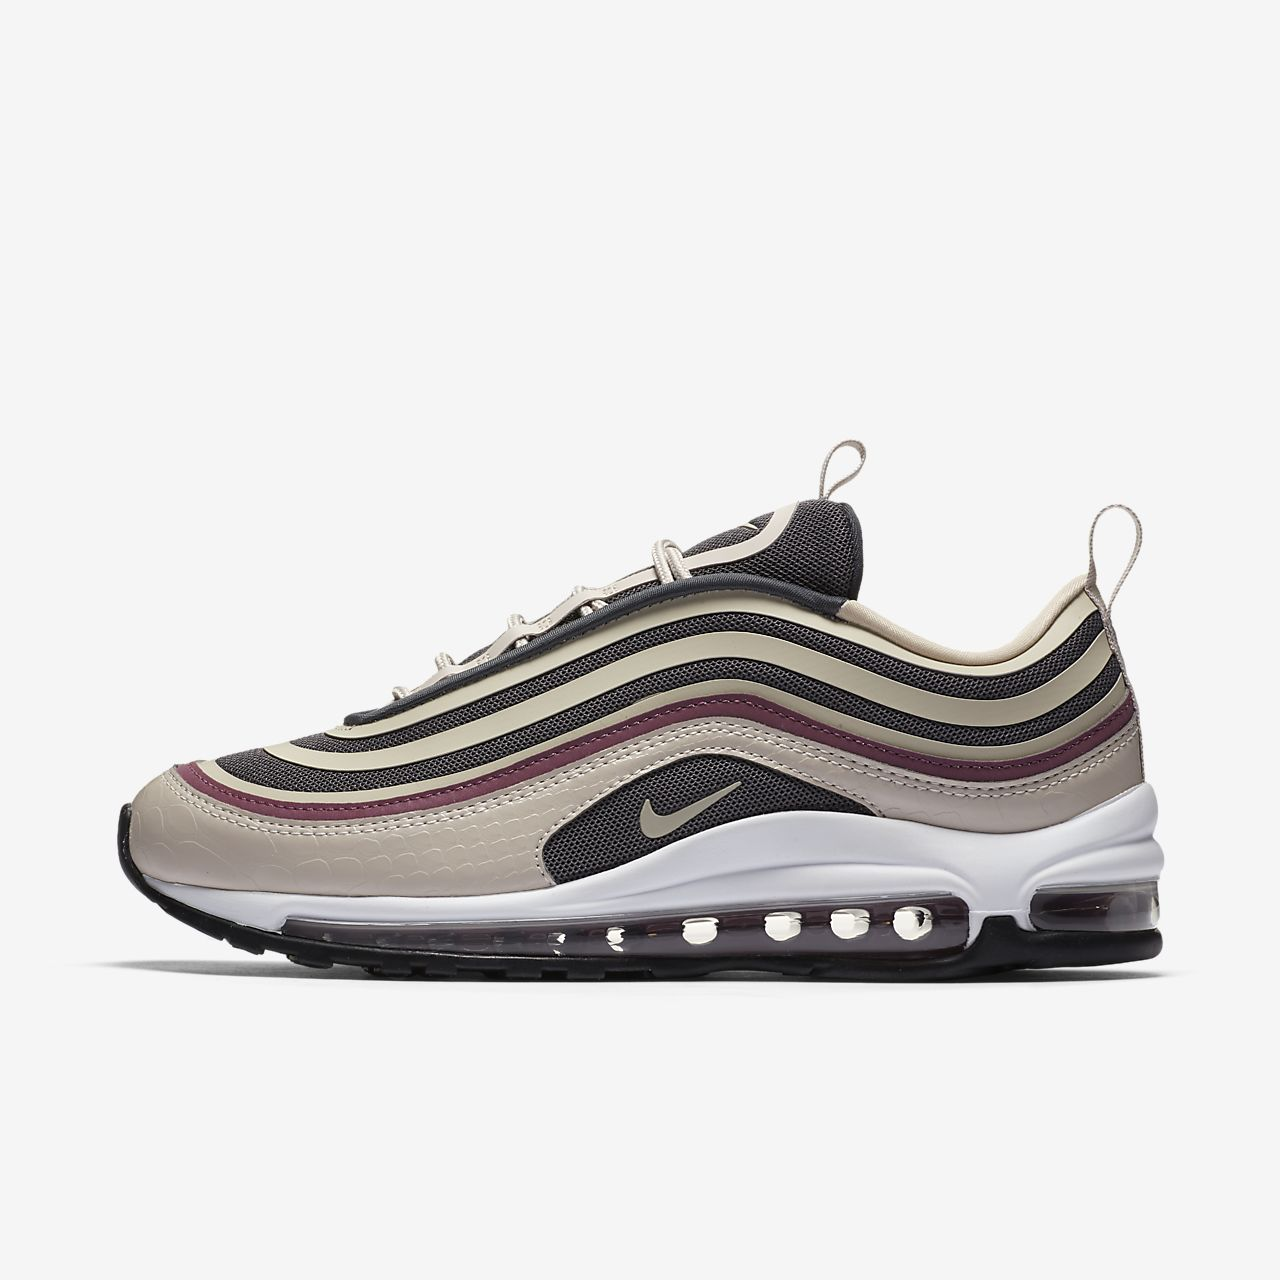 The Undefeated x Nike Air Max 97 Olive Release Will Also Include